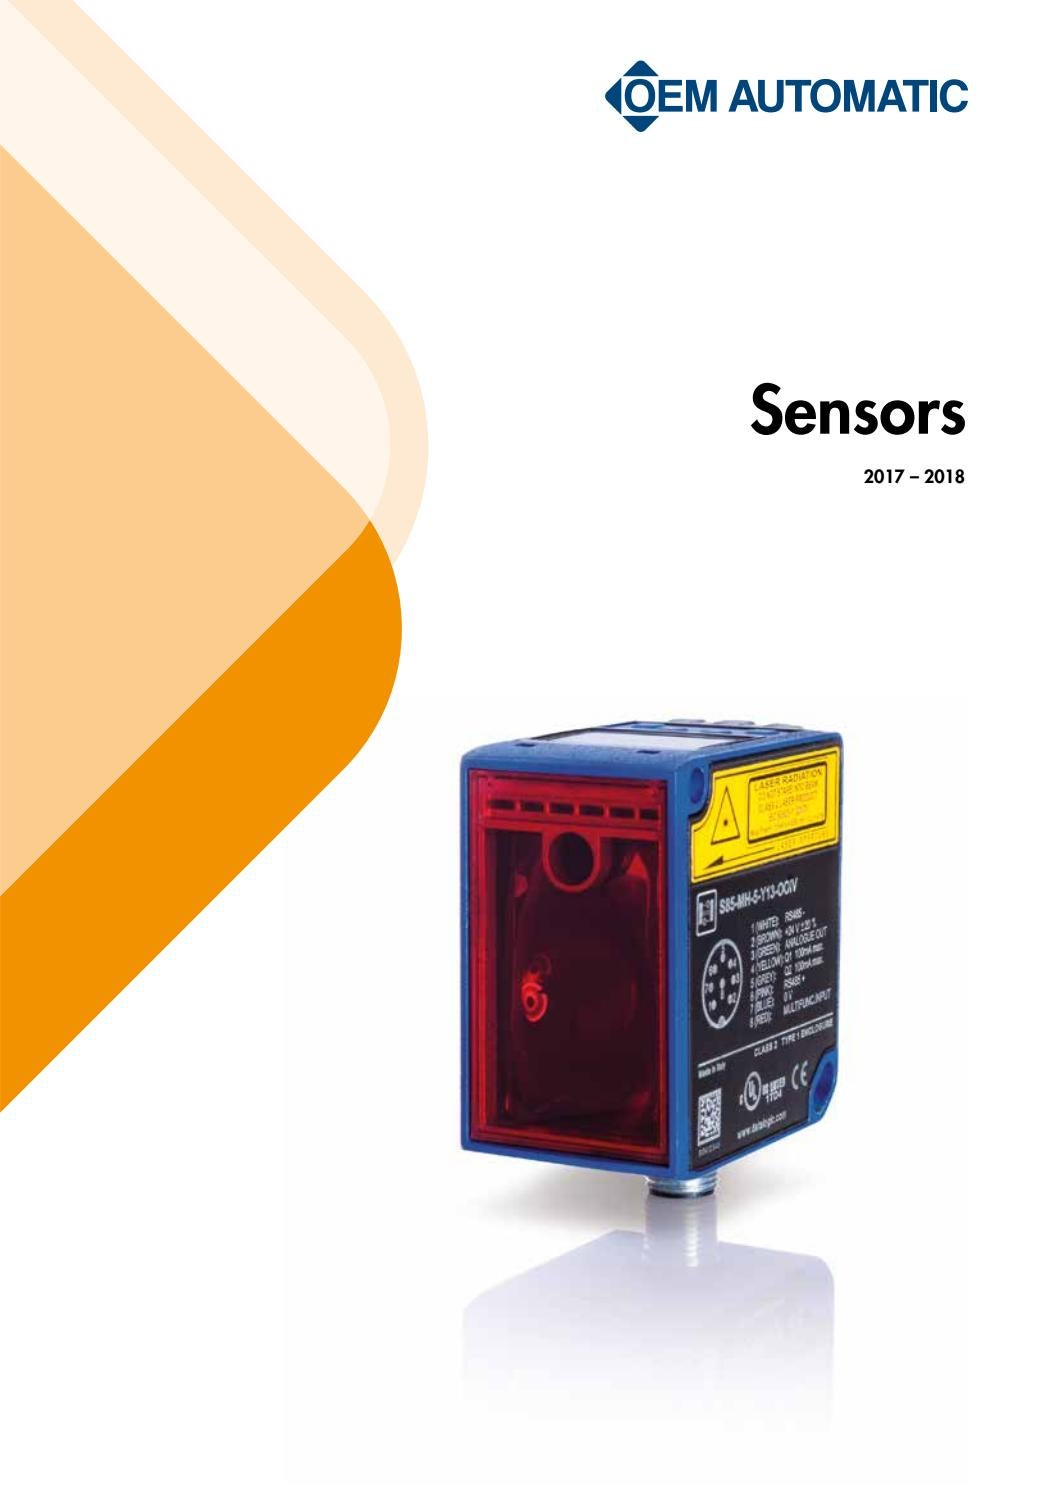 Machine And Safety Sensors 2017 2018 By Oem International Issuu Wire Configurations Are 2wire 3wire Npn Pnp 4wire